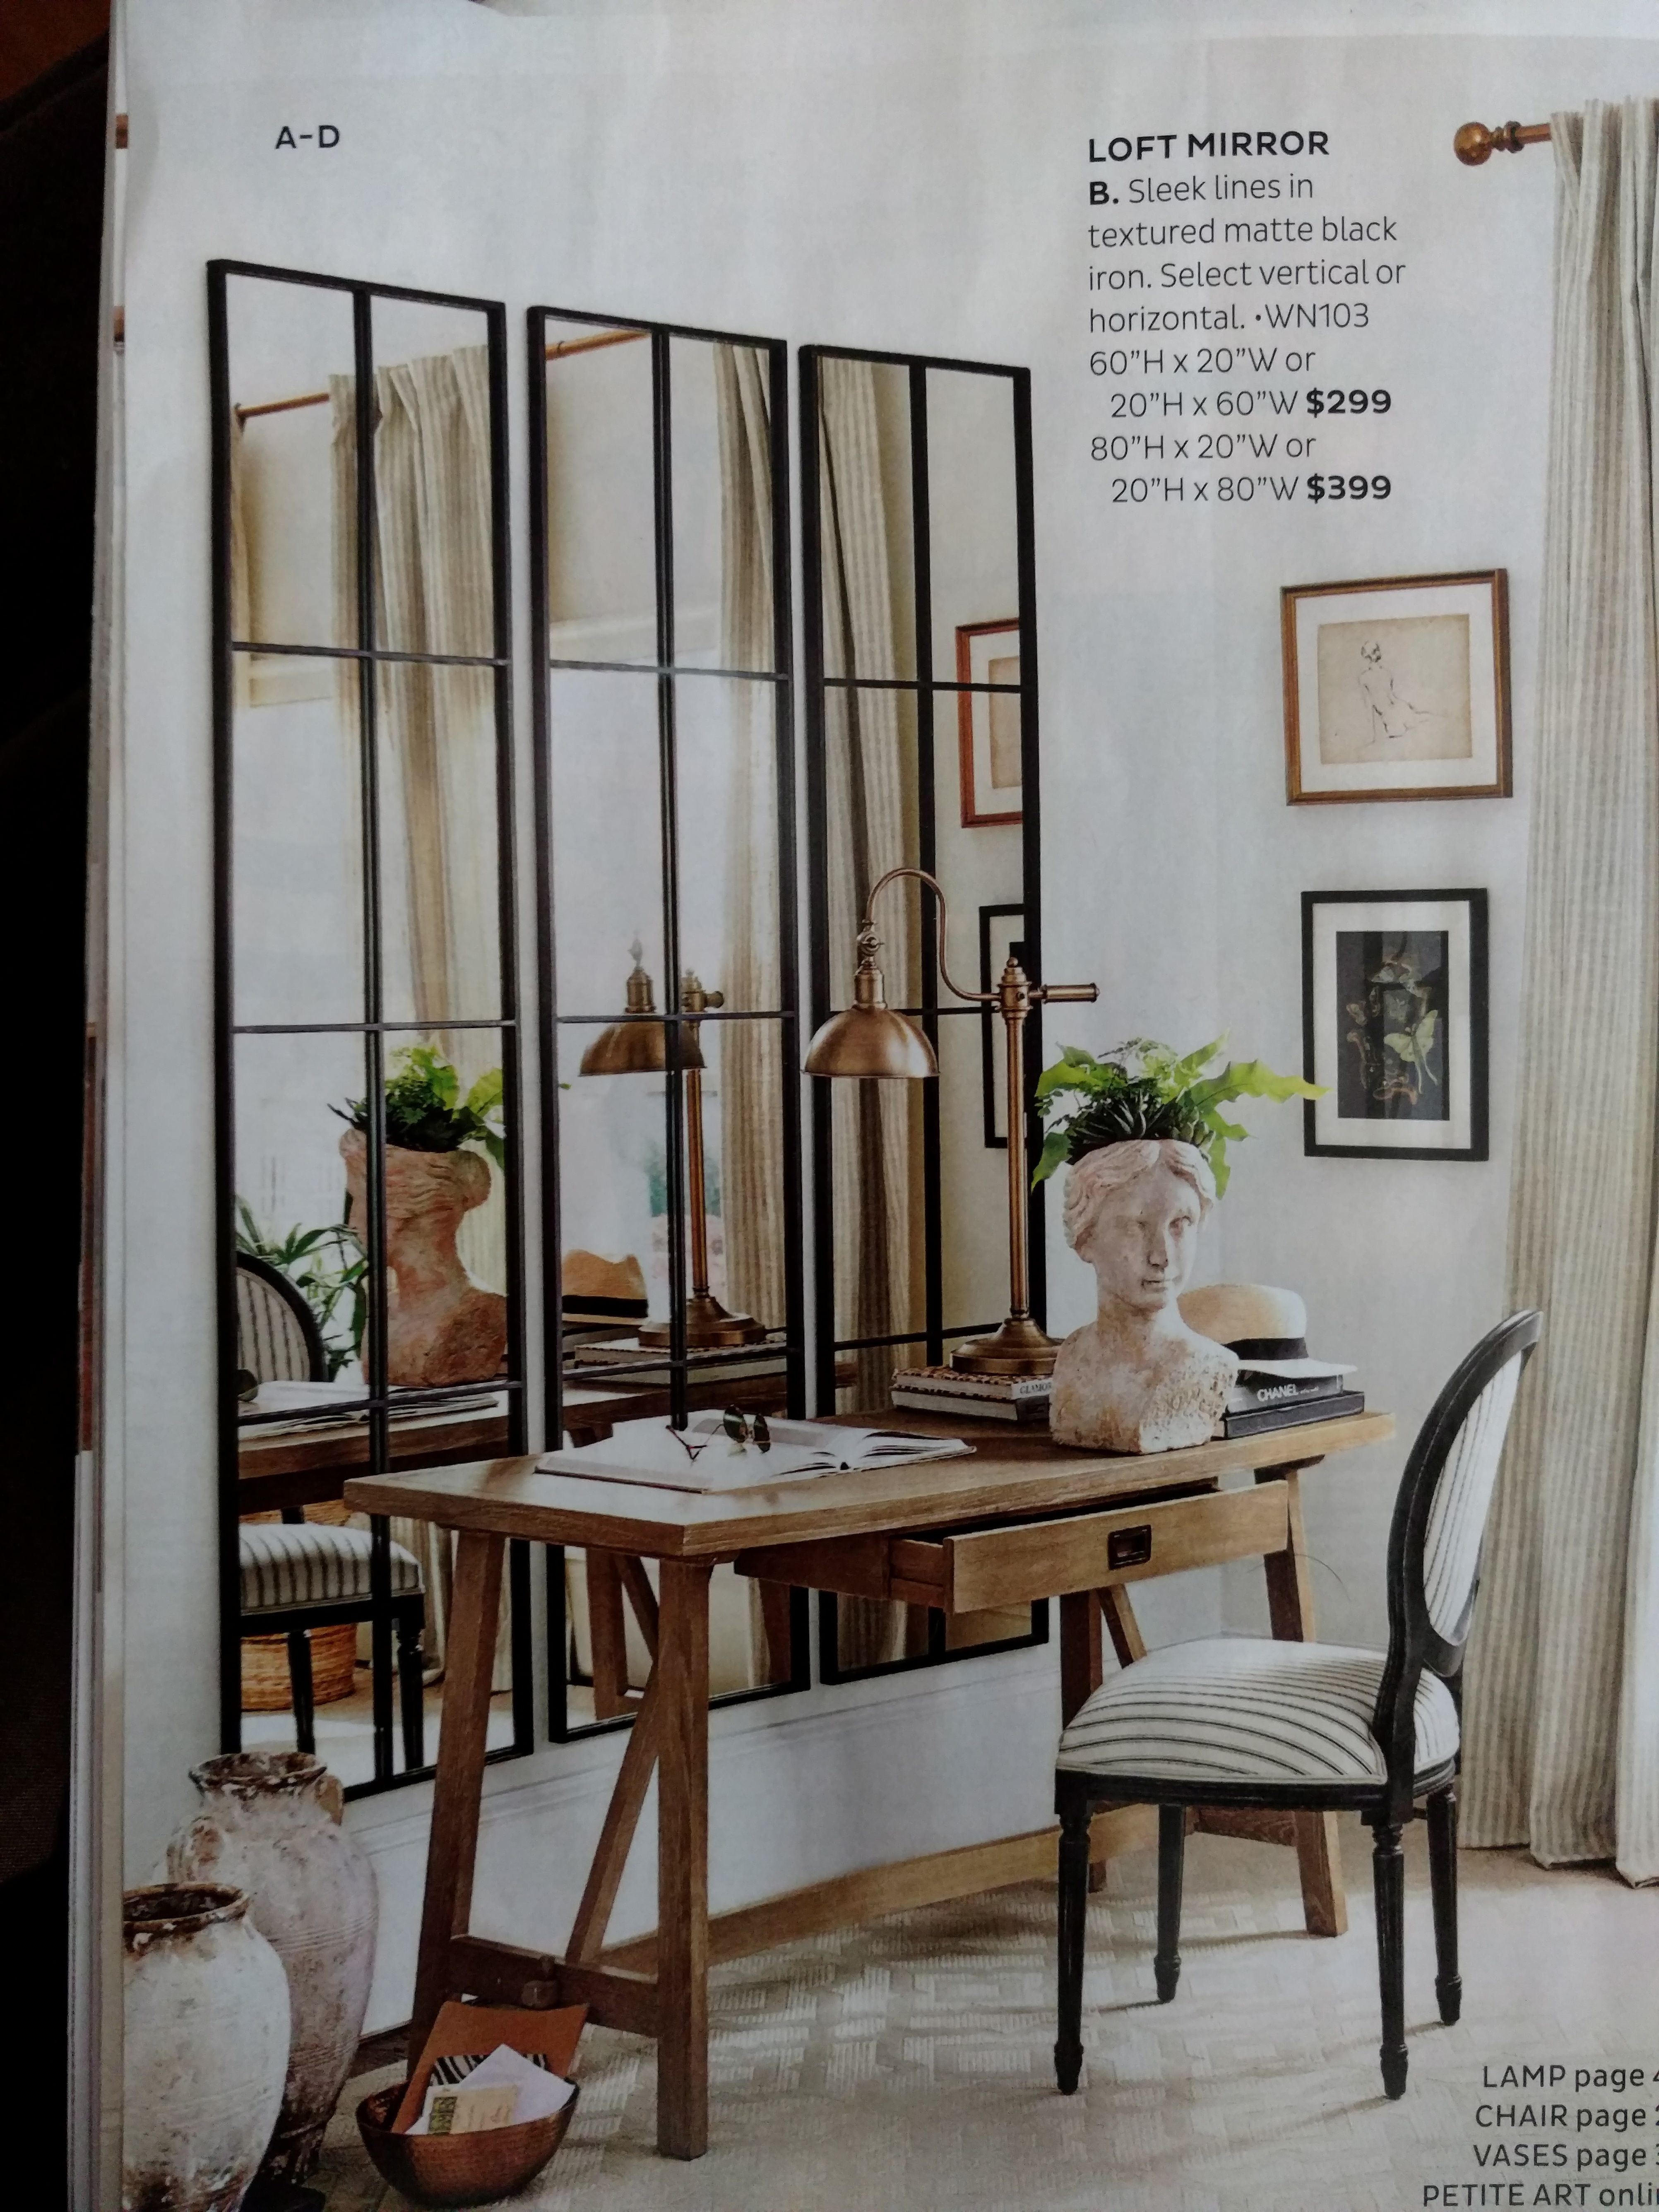 Loft Mirror Ballard Designs In 2021 Home Decor Home Mirror Dining Room